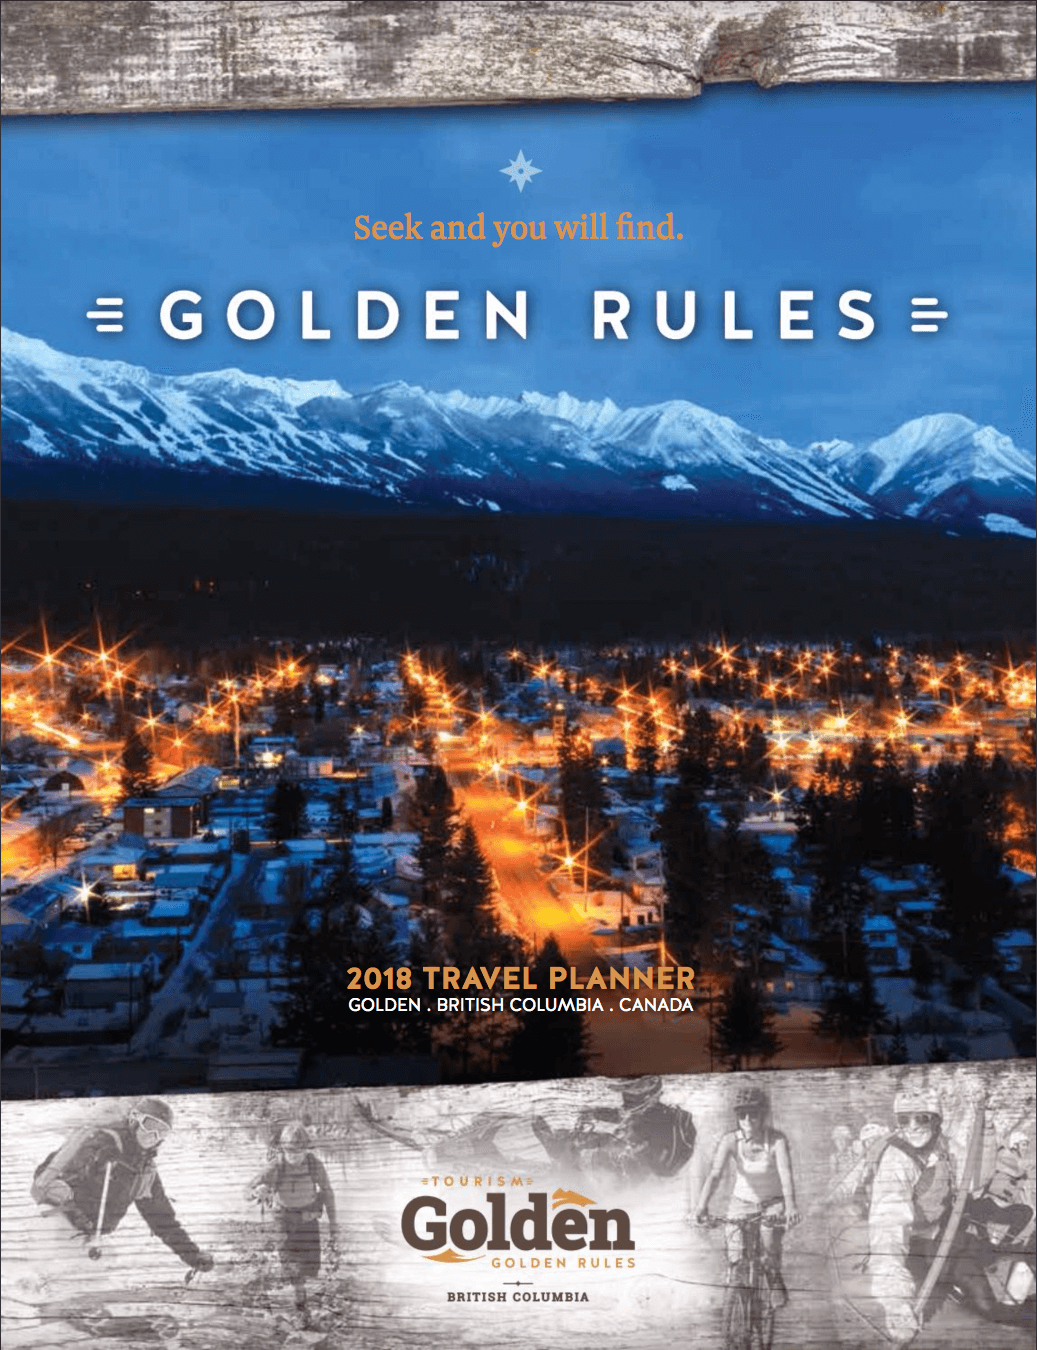 tourism-golden-travel-planner-2018